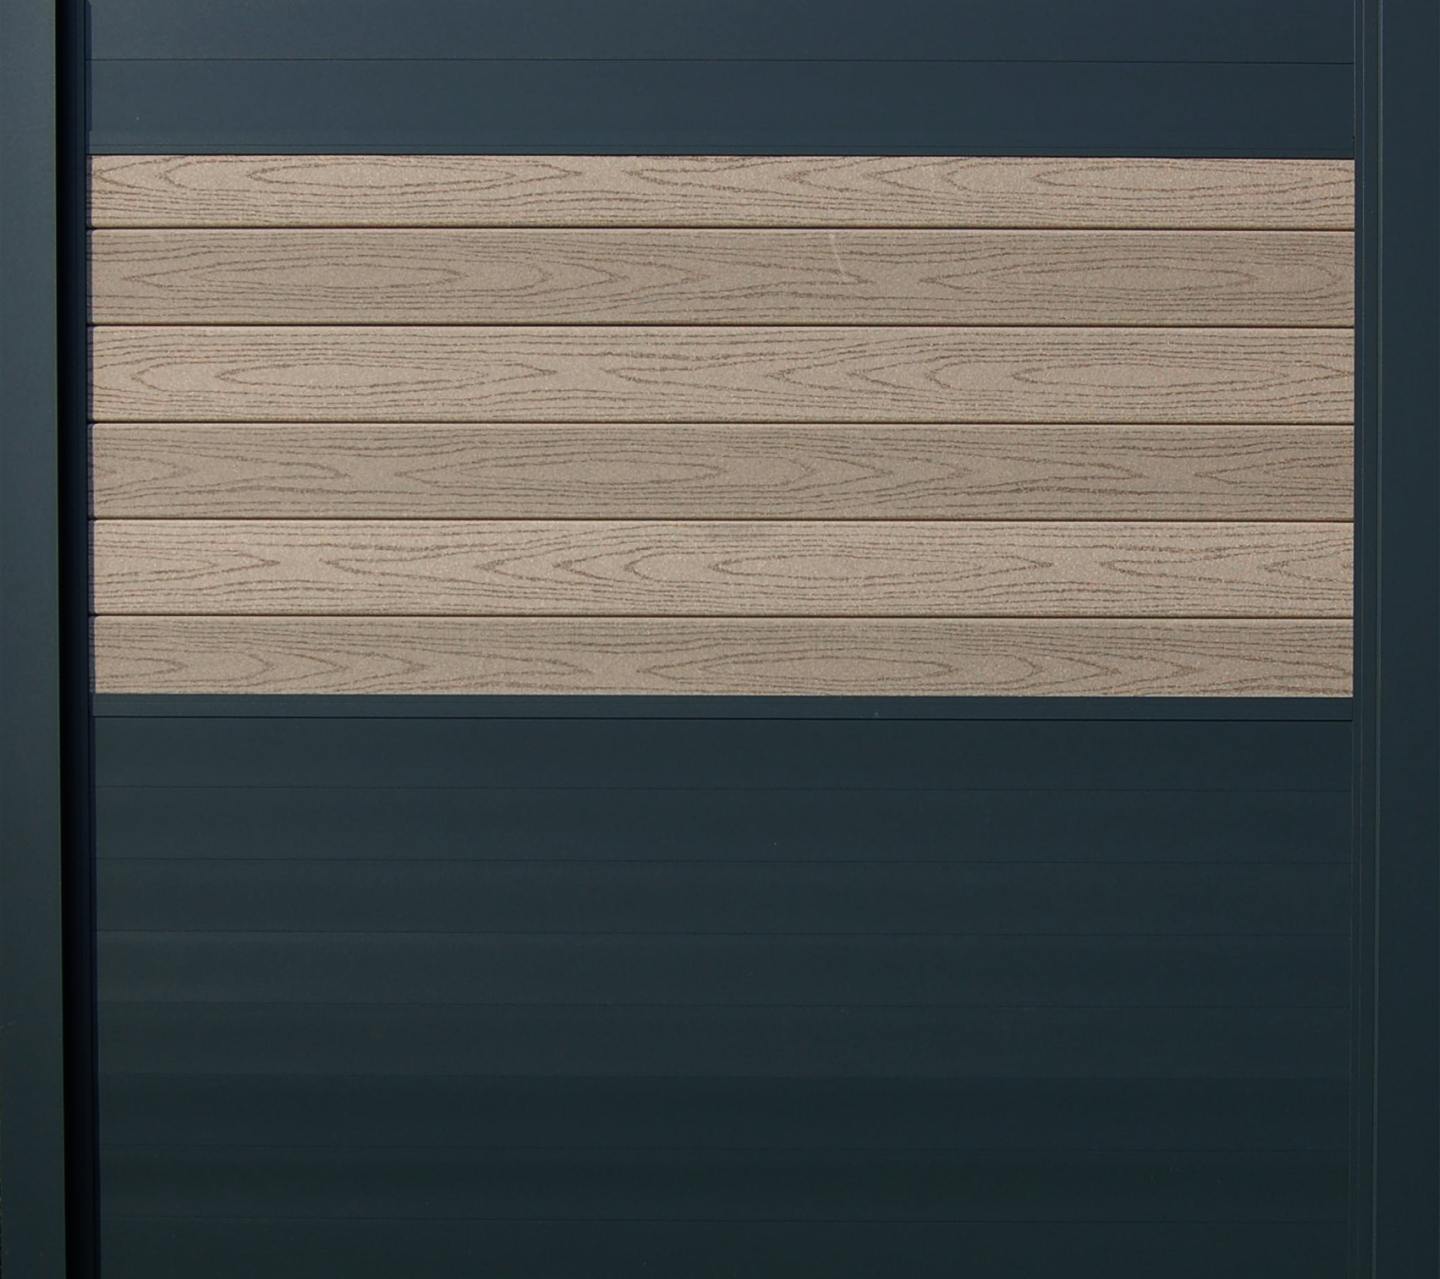 IdeAL scherm | Antraciet- Prof. grijs | 180x200 | 6 planks